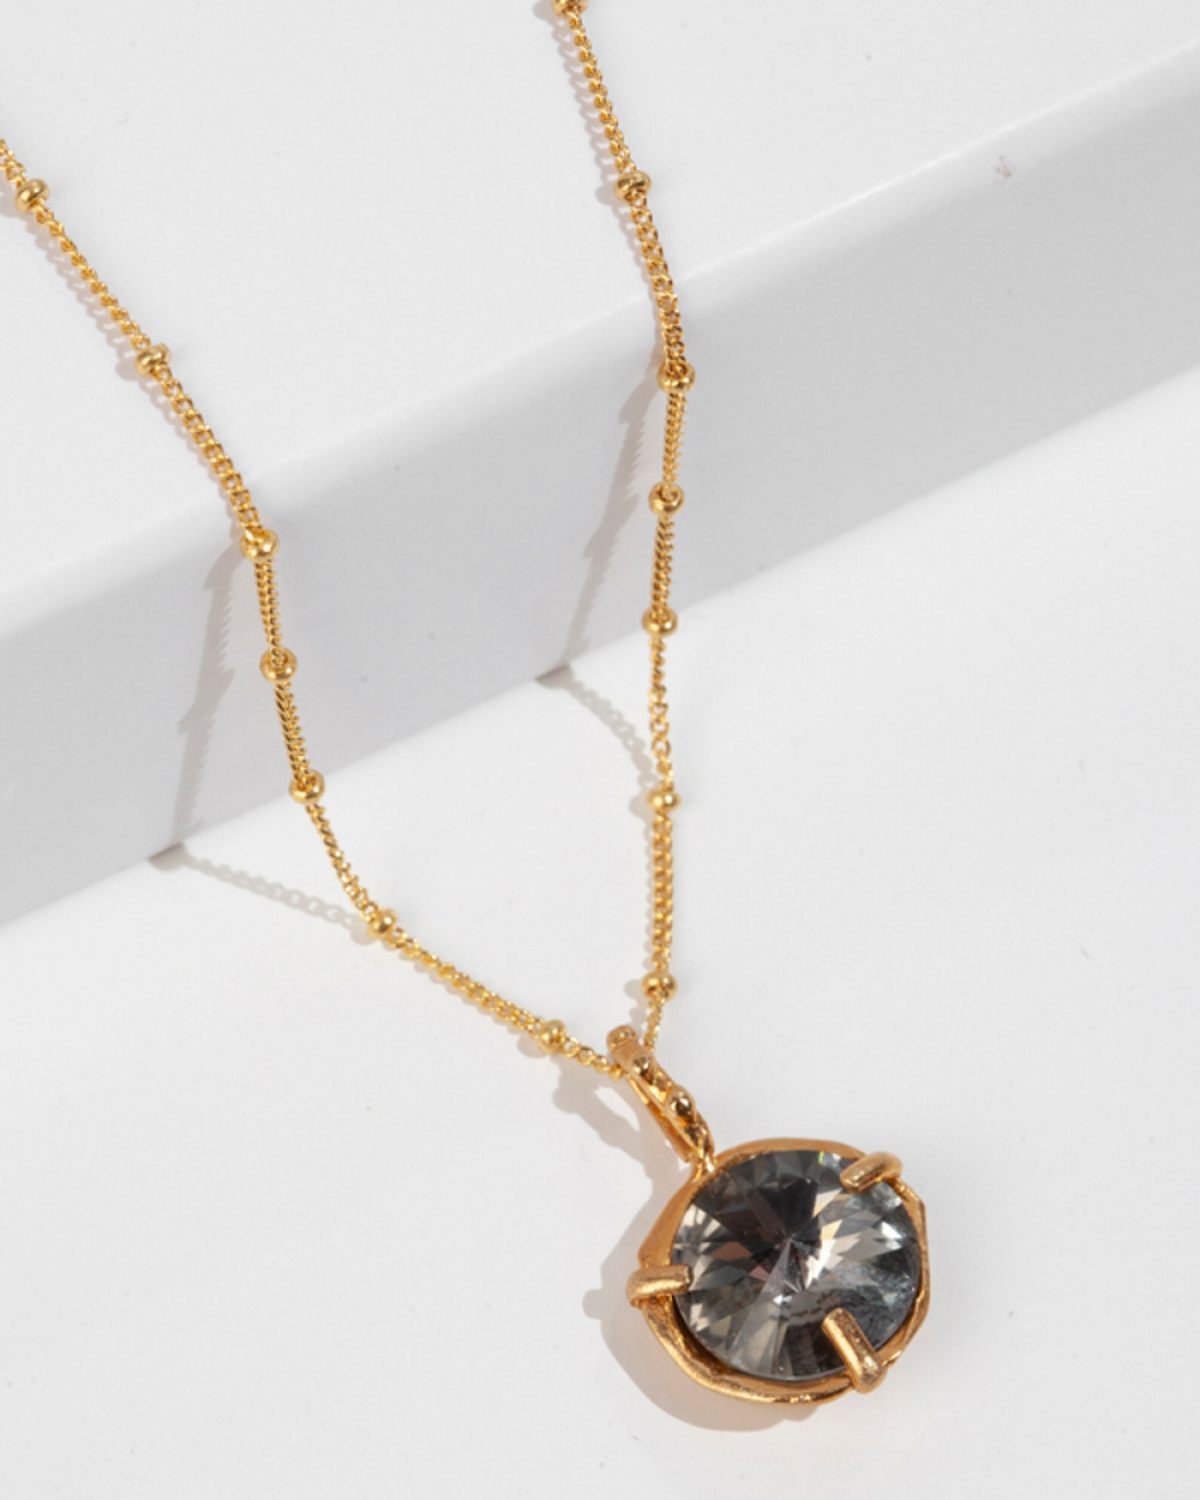 MARIE Gold Pendant/Necklace